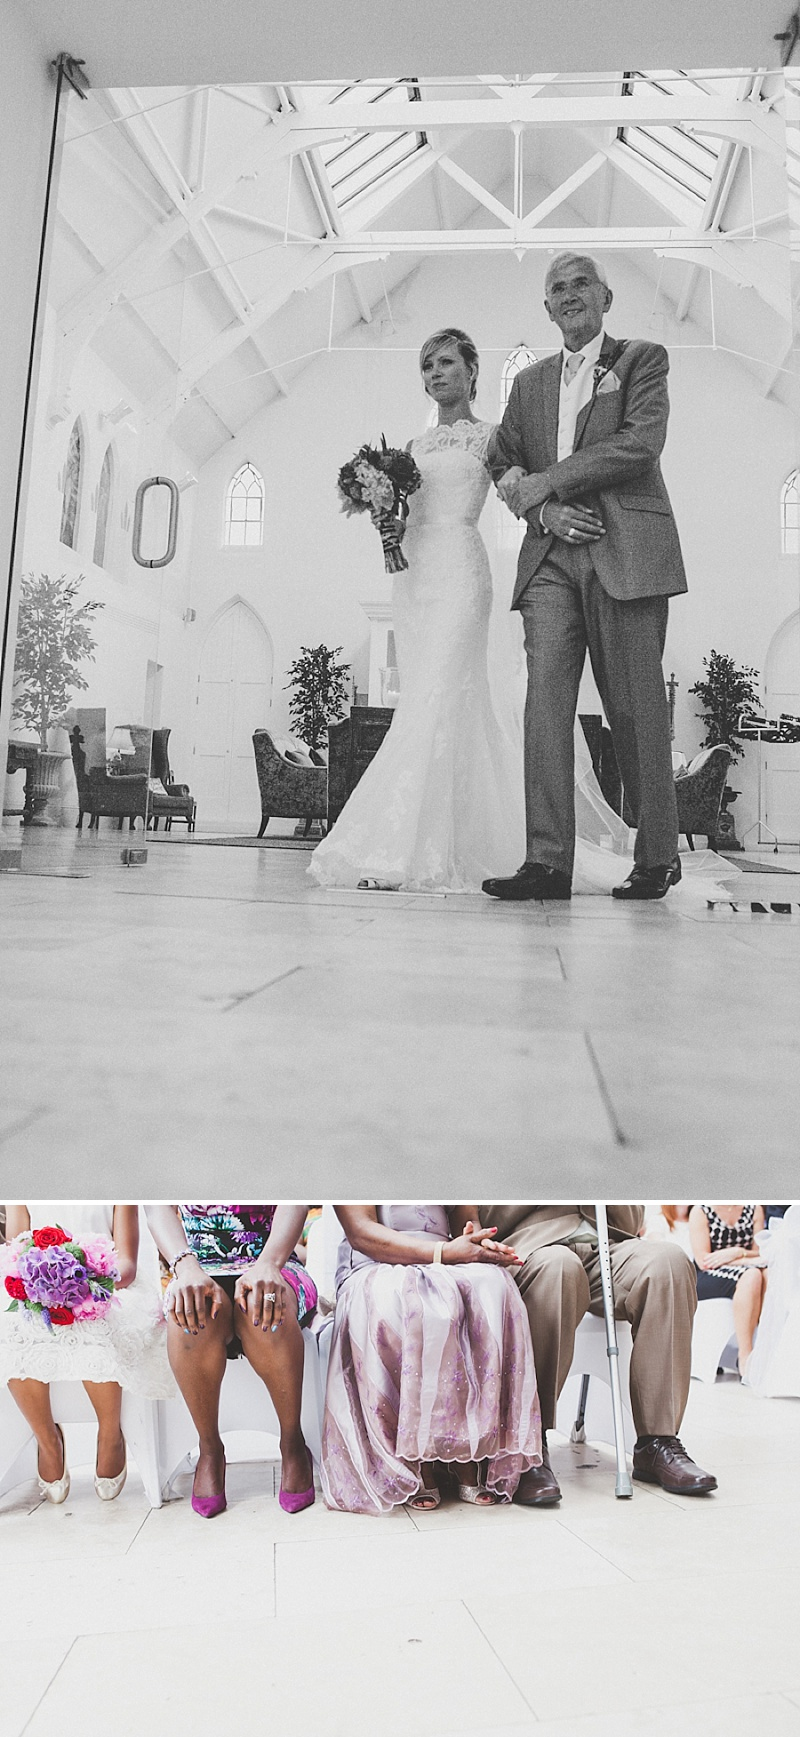 A Colourful Contemporary Wedding At Fazeley Studios Digbeth Bride in Justin Alexander Gown Photography by Jordanna Marston 0007 Love In A Hopeless Place.